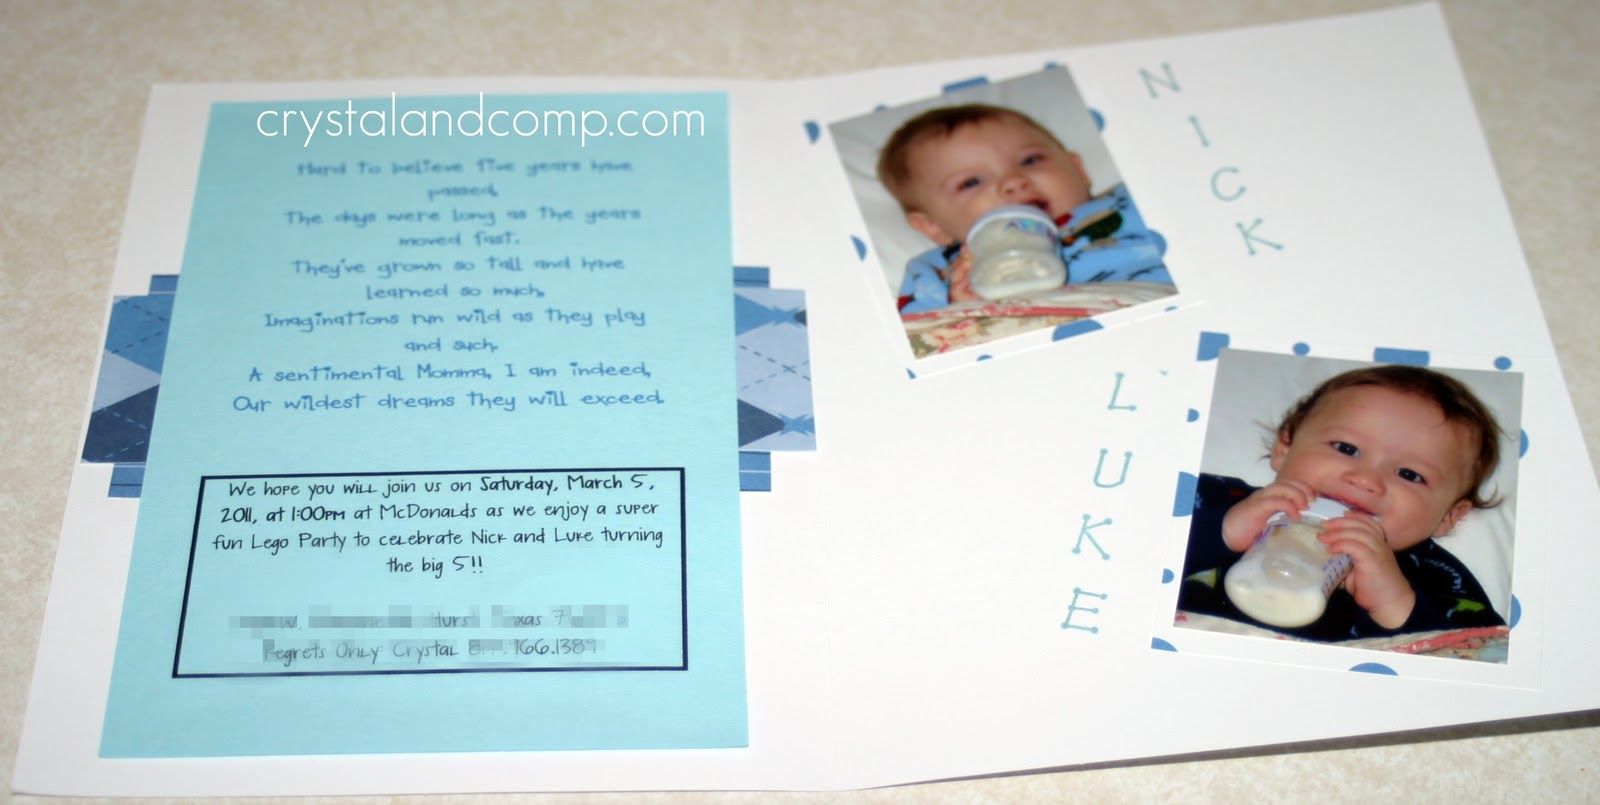 8 Use Card Stock Cut To Size Print Your Party Details I Like Write A Poem About The Birthday Children And Then Include At